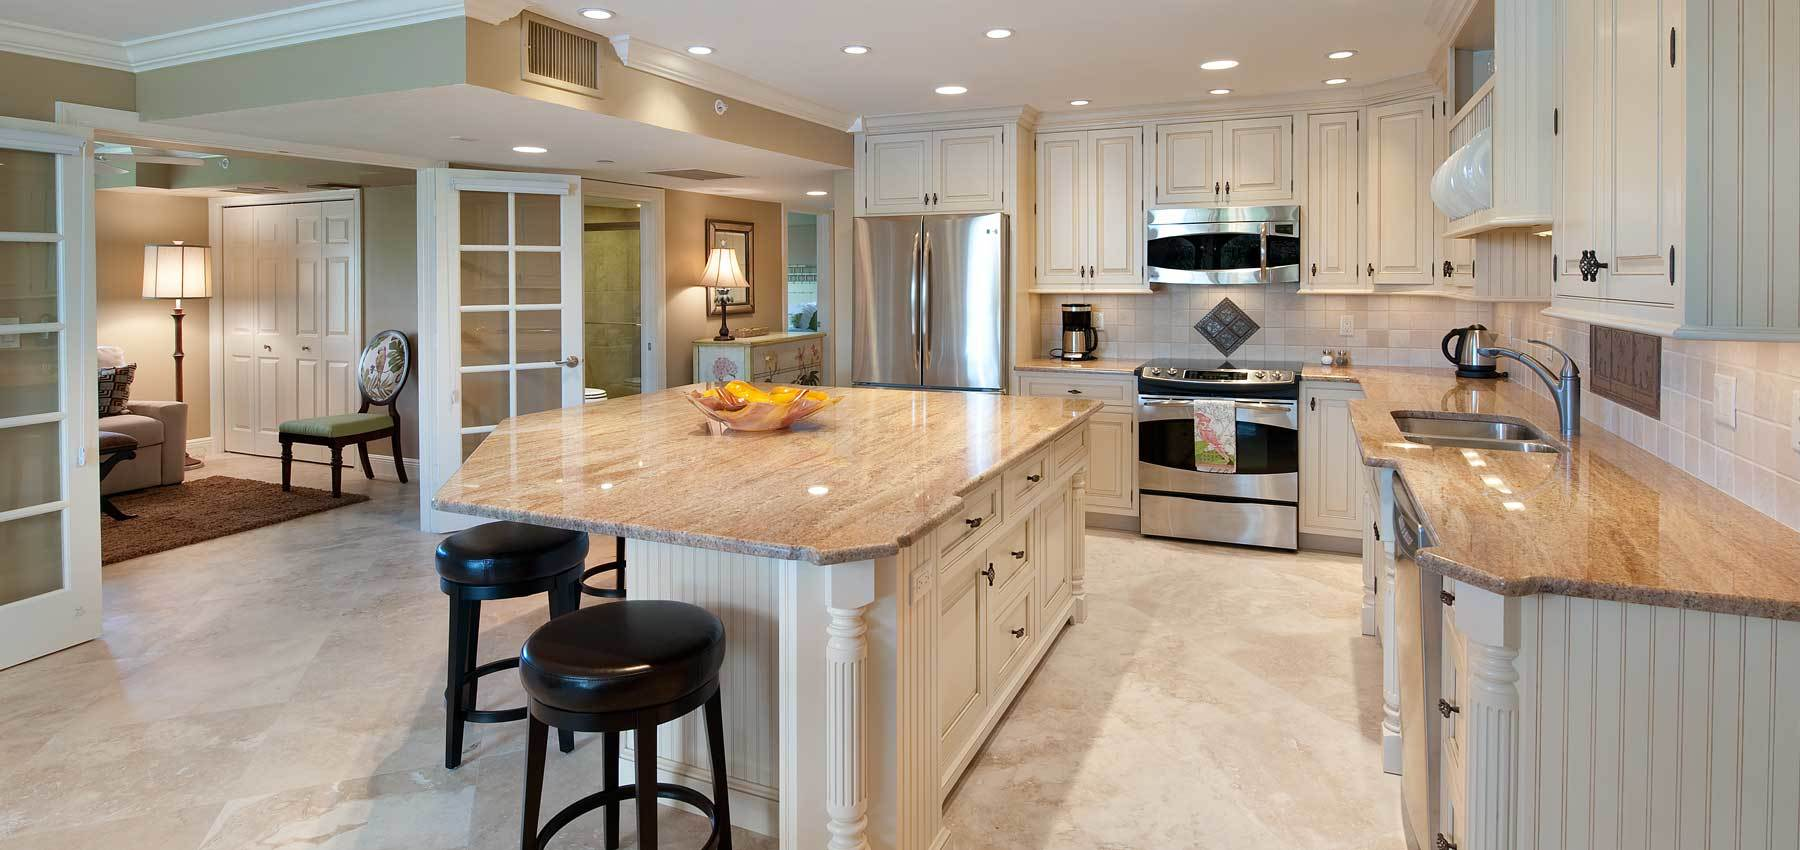 Mobile Island For Kitchen Kgt Remodeling Home Remodeling Naples Florida